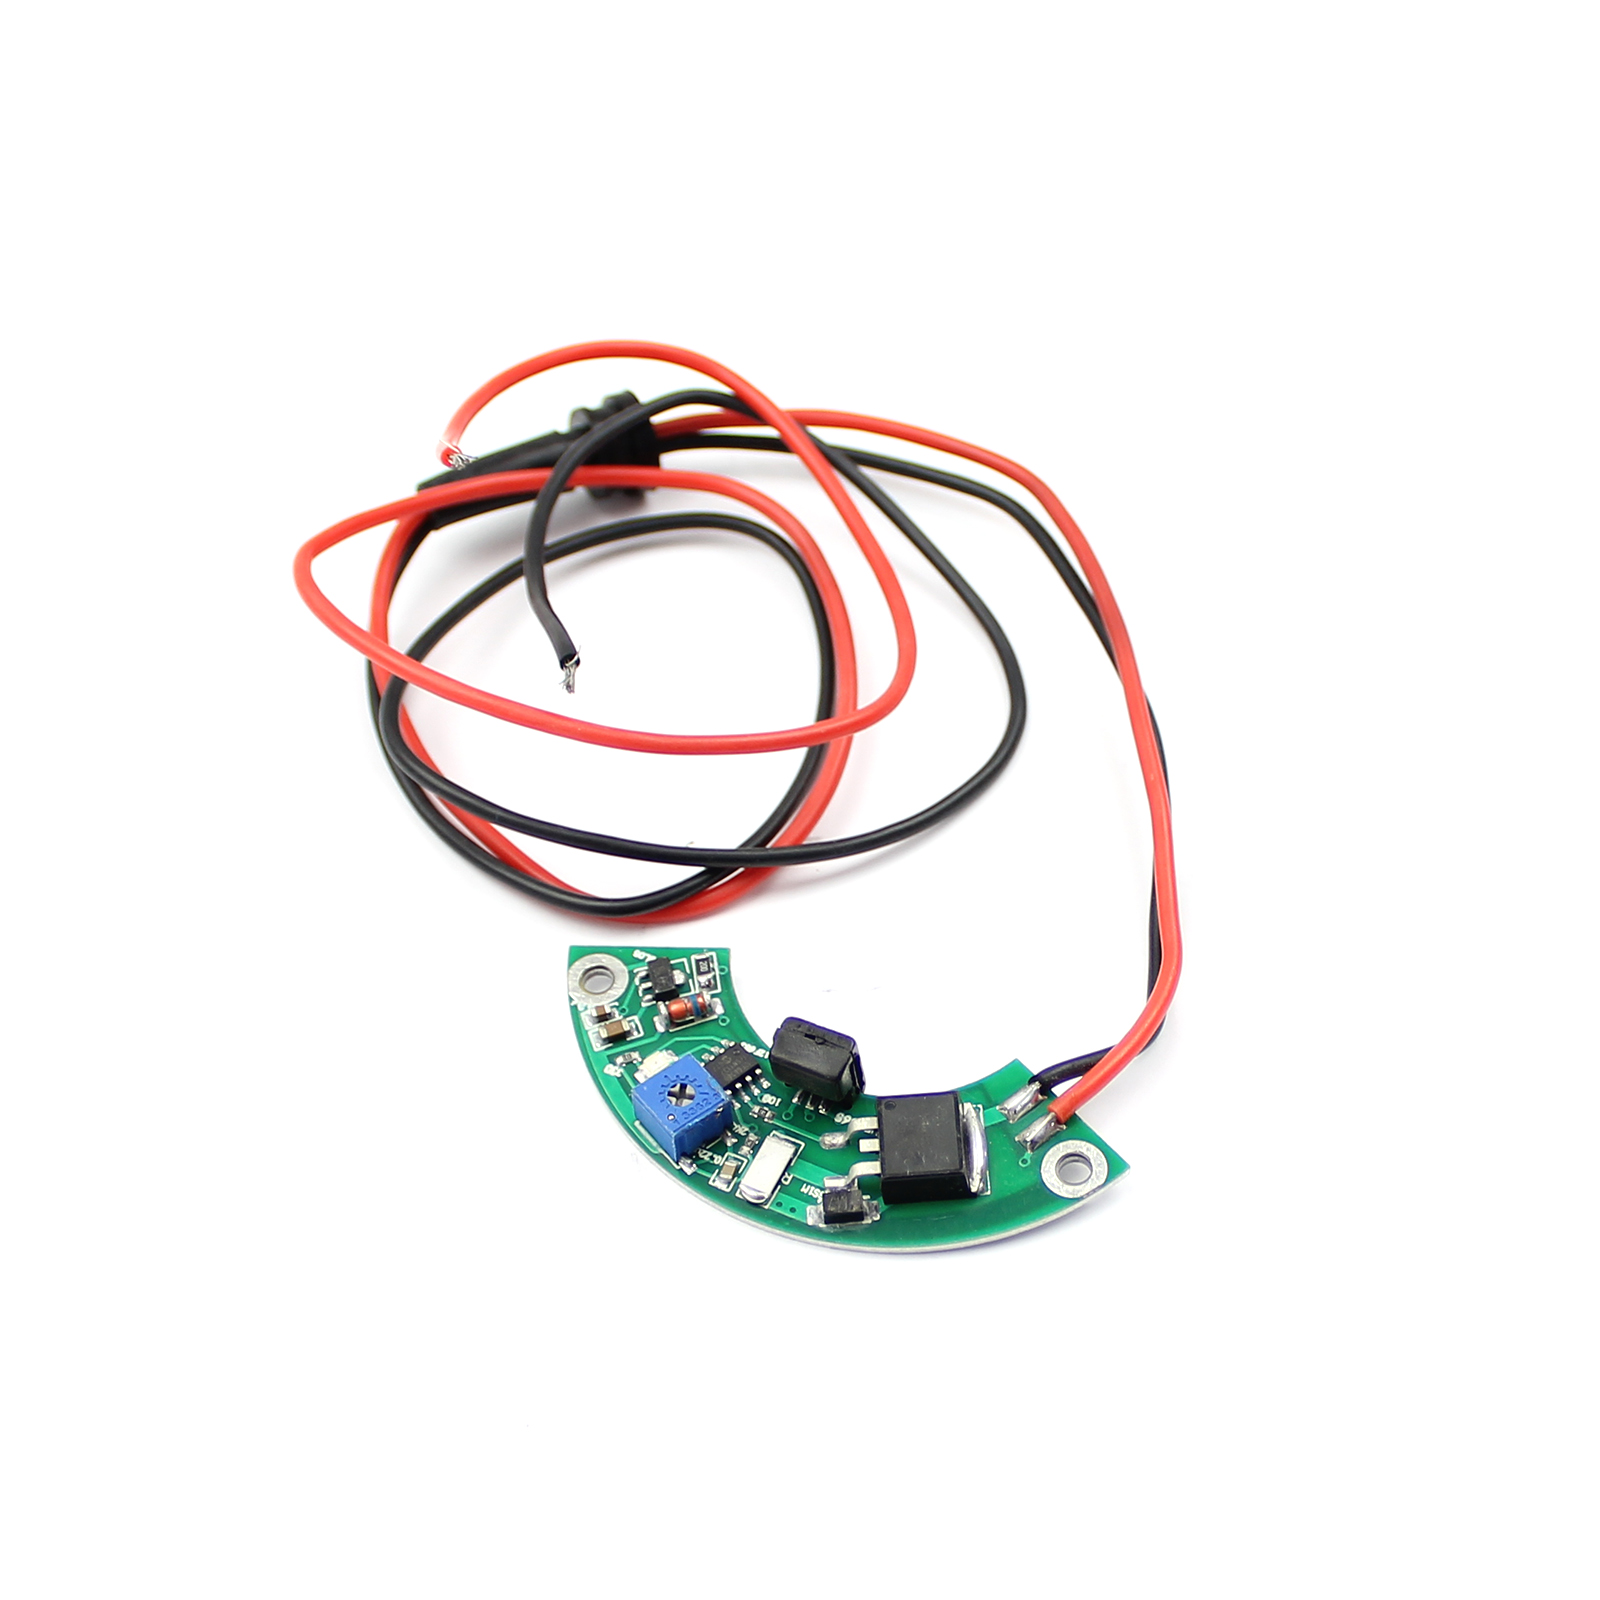 RPM Replacement Ignition Module (Suits New Ready to Run 7000 Series)